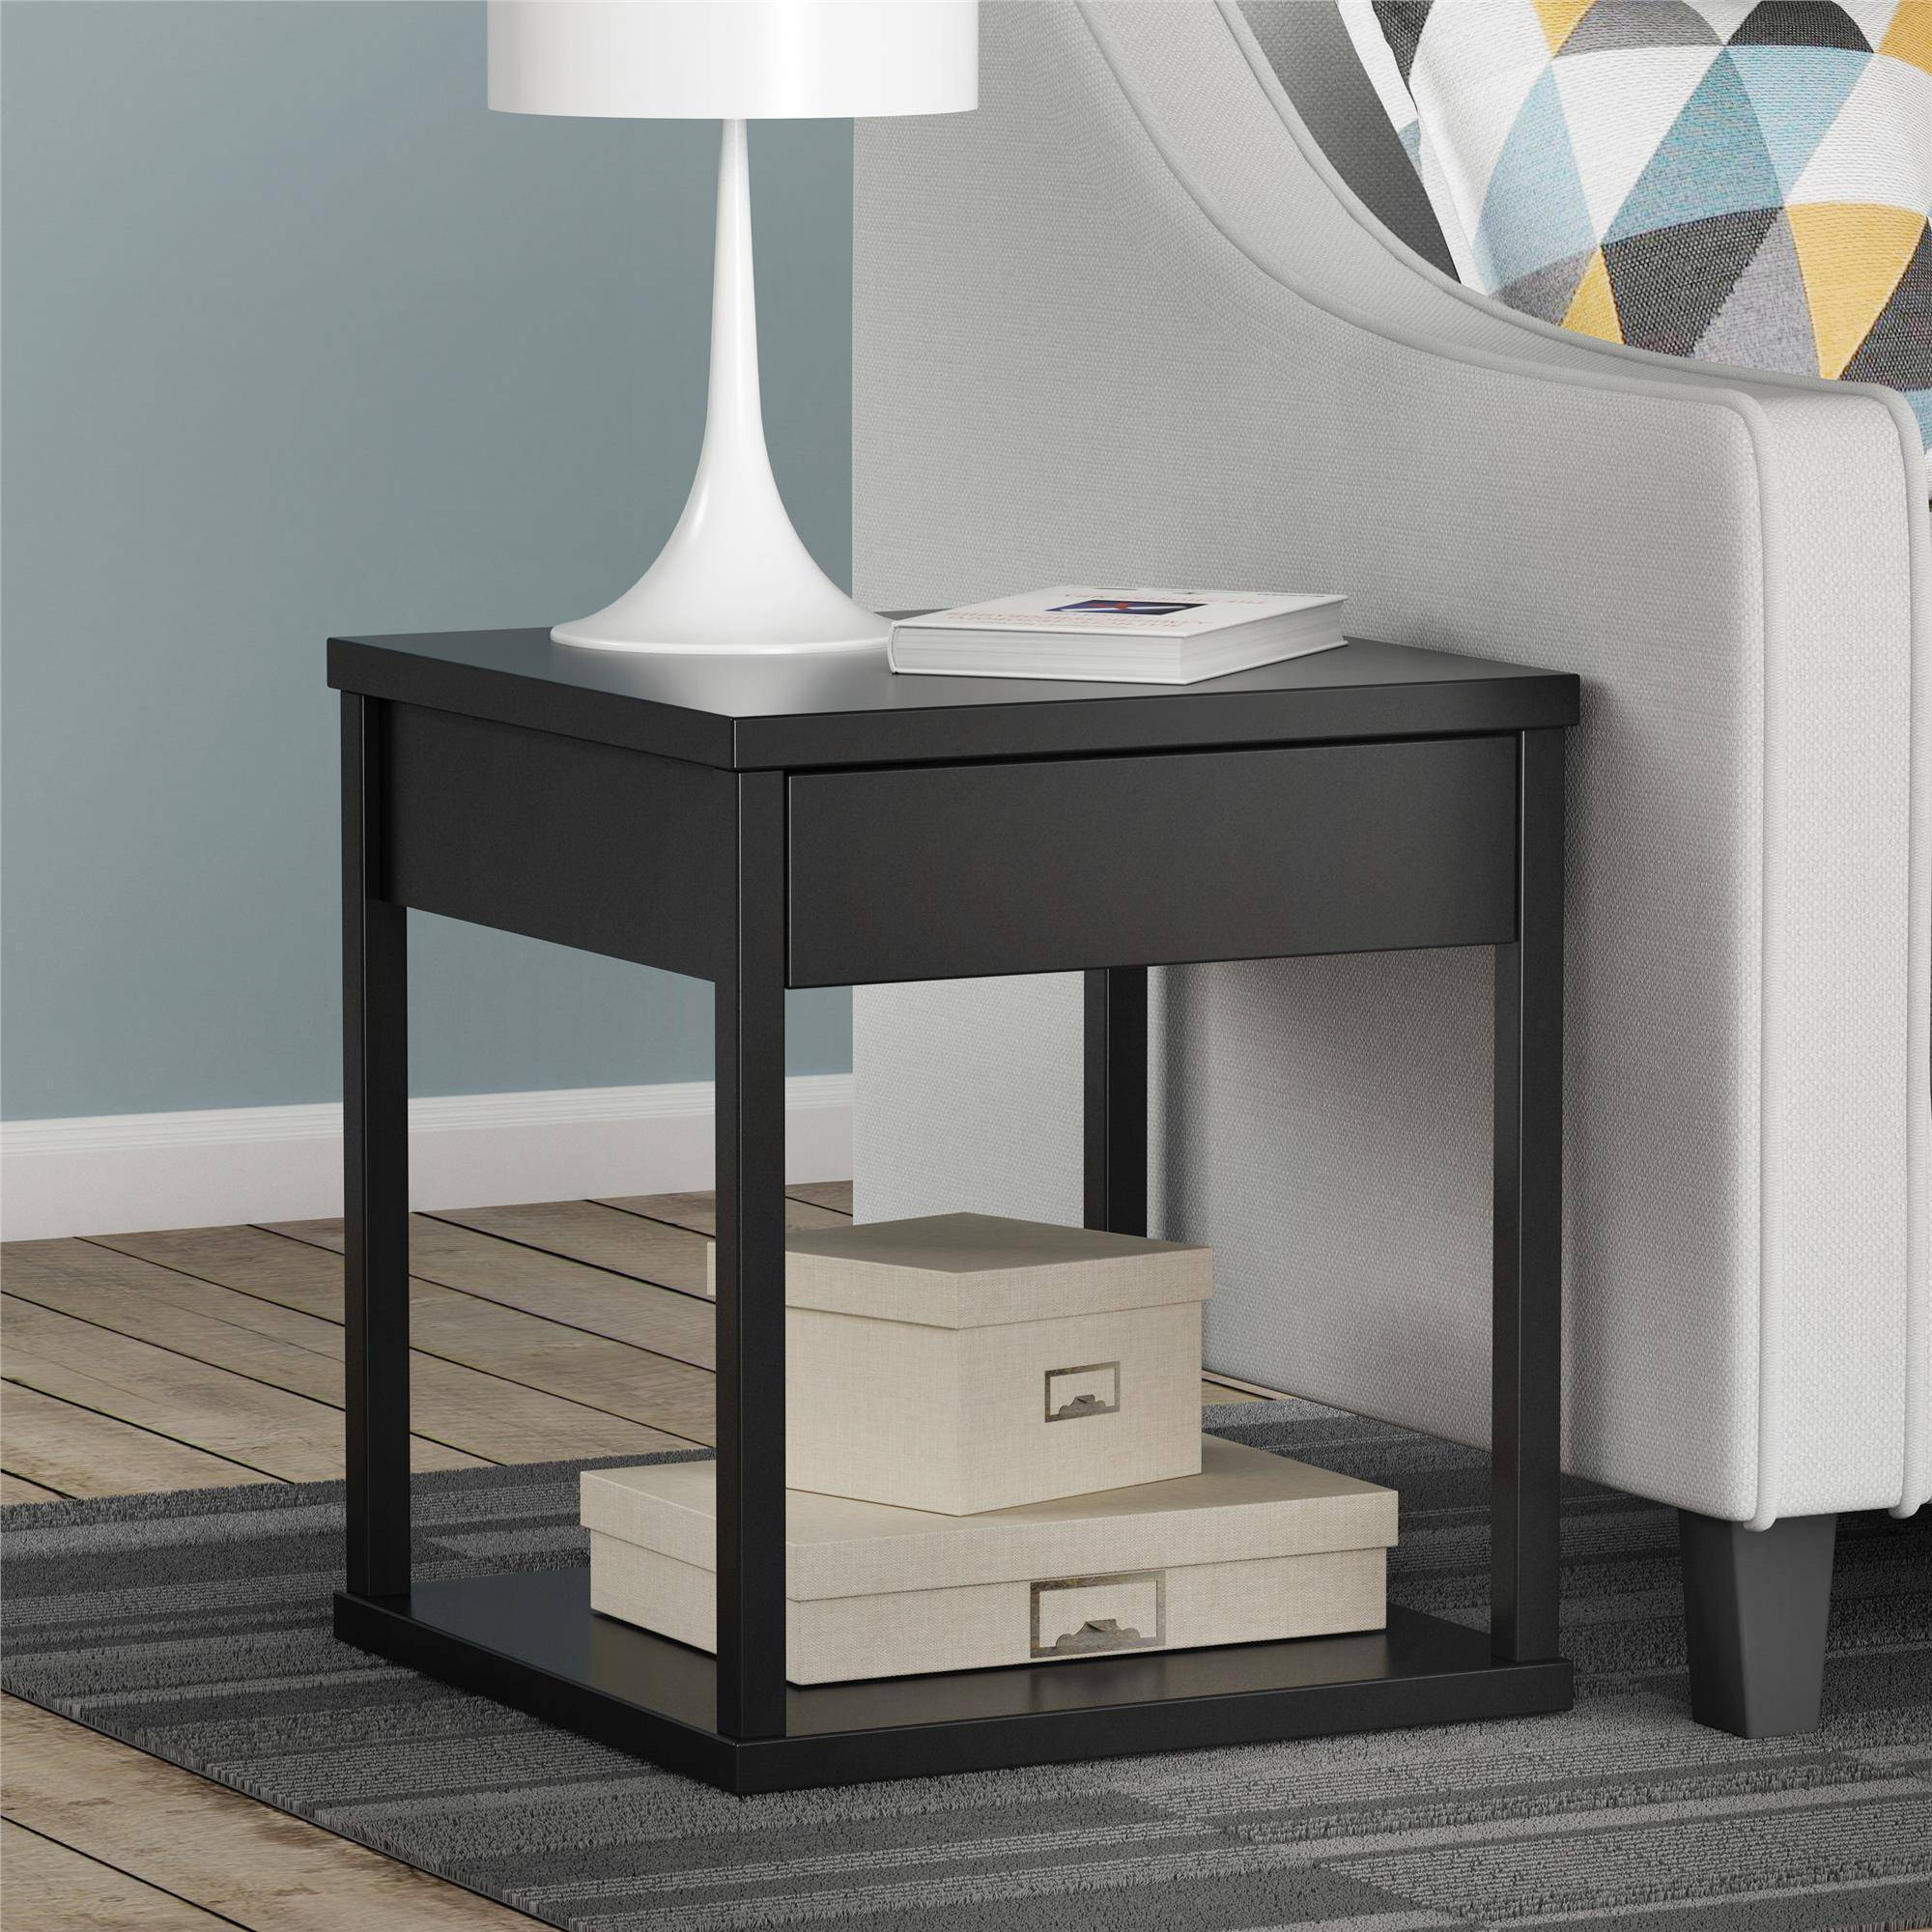 furinno petite end table bedroom night stand set two gray tables multiple finishes modern stone coffee can use spray paint wood type for furniture design patio lounger calendar